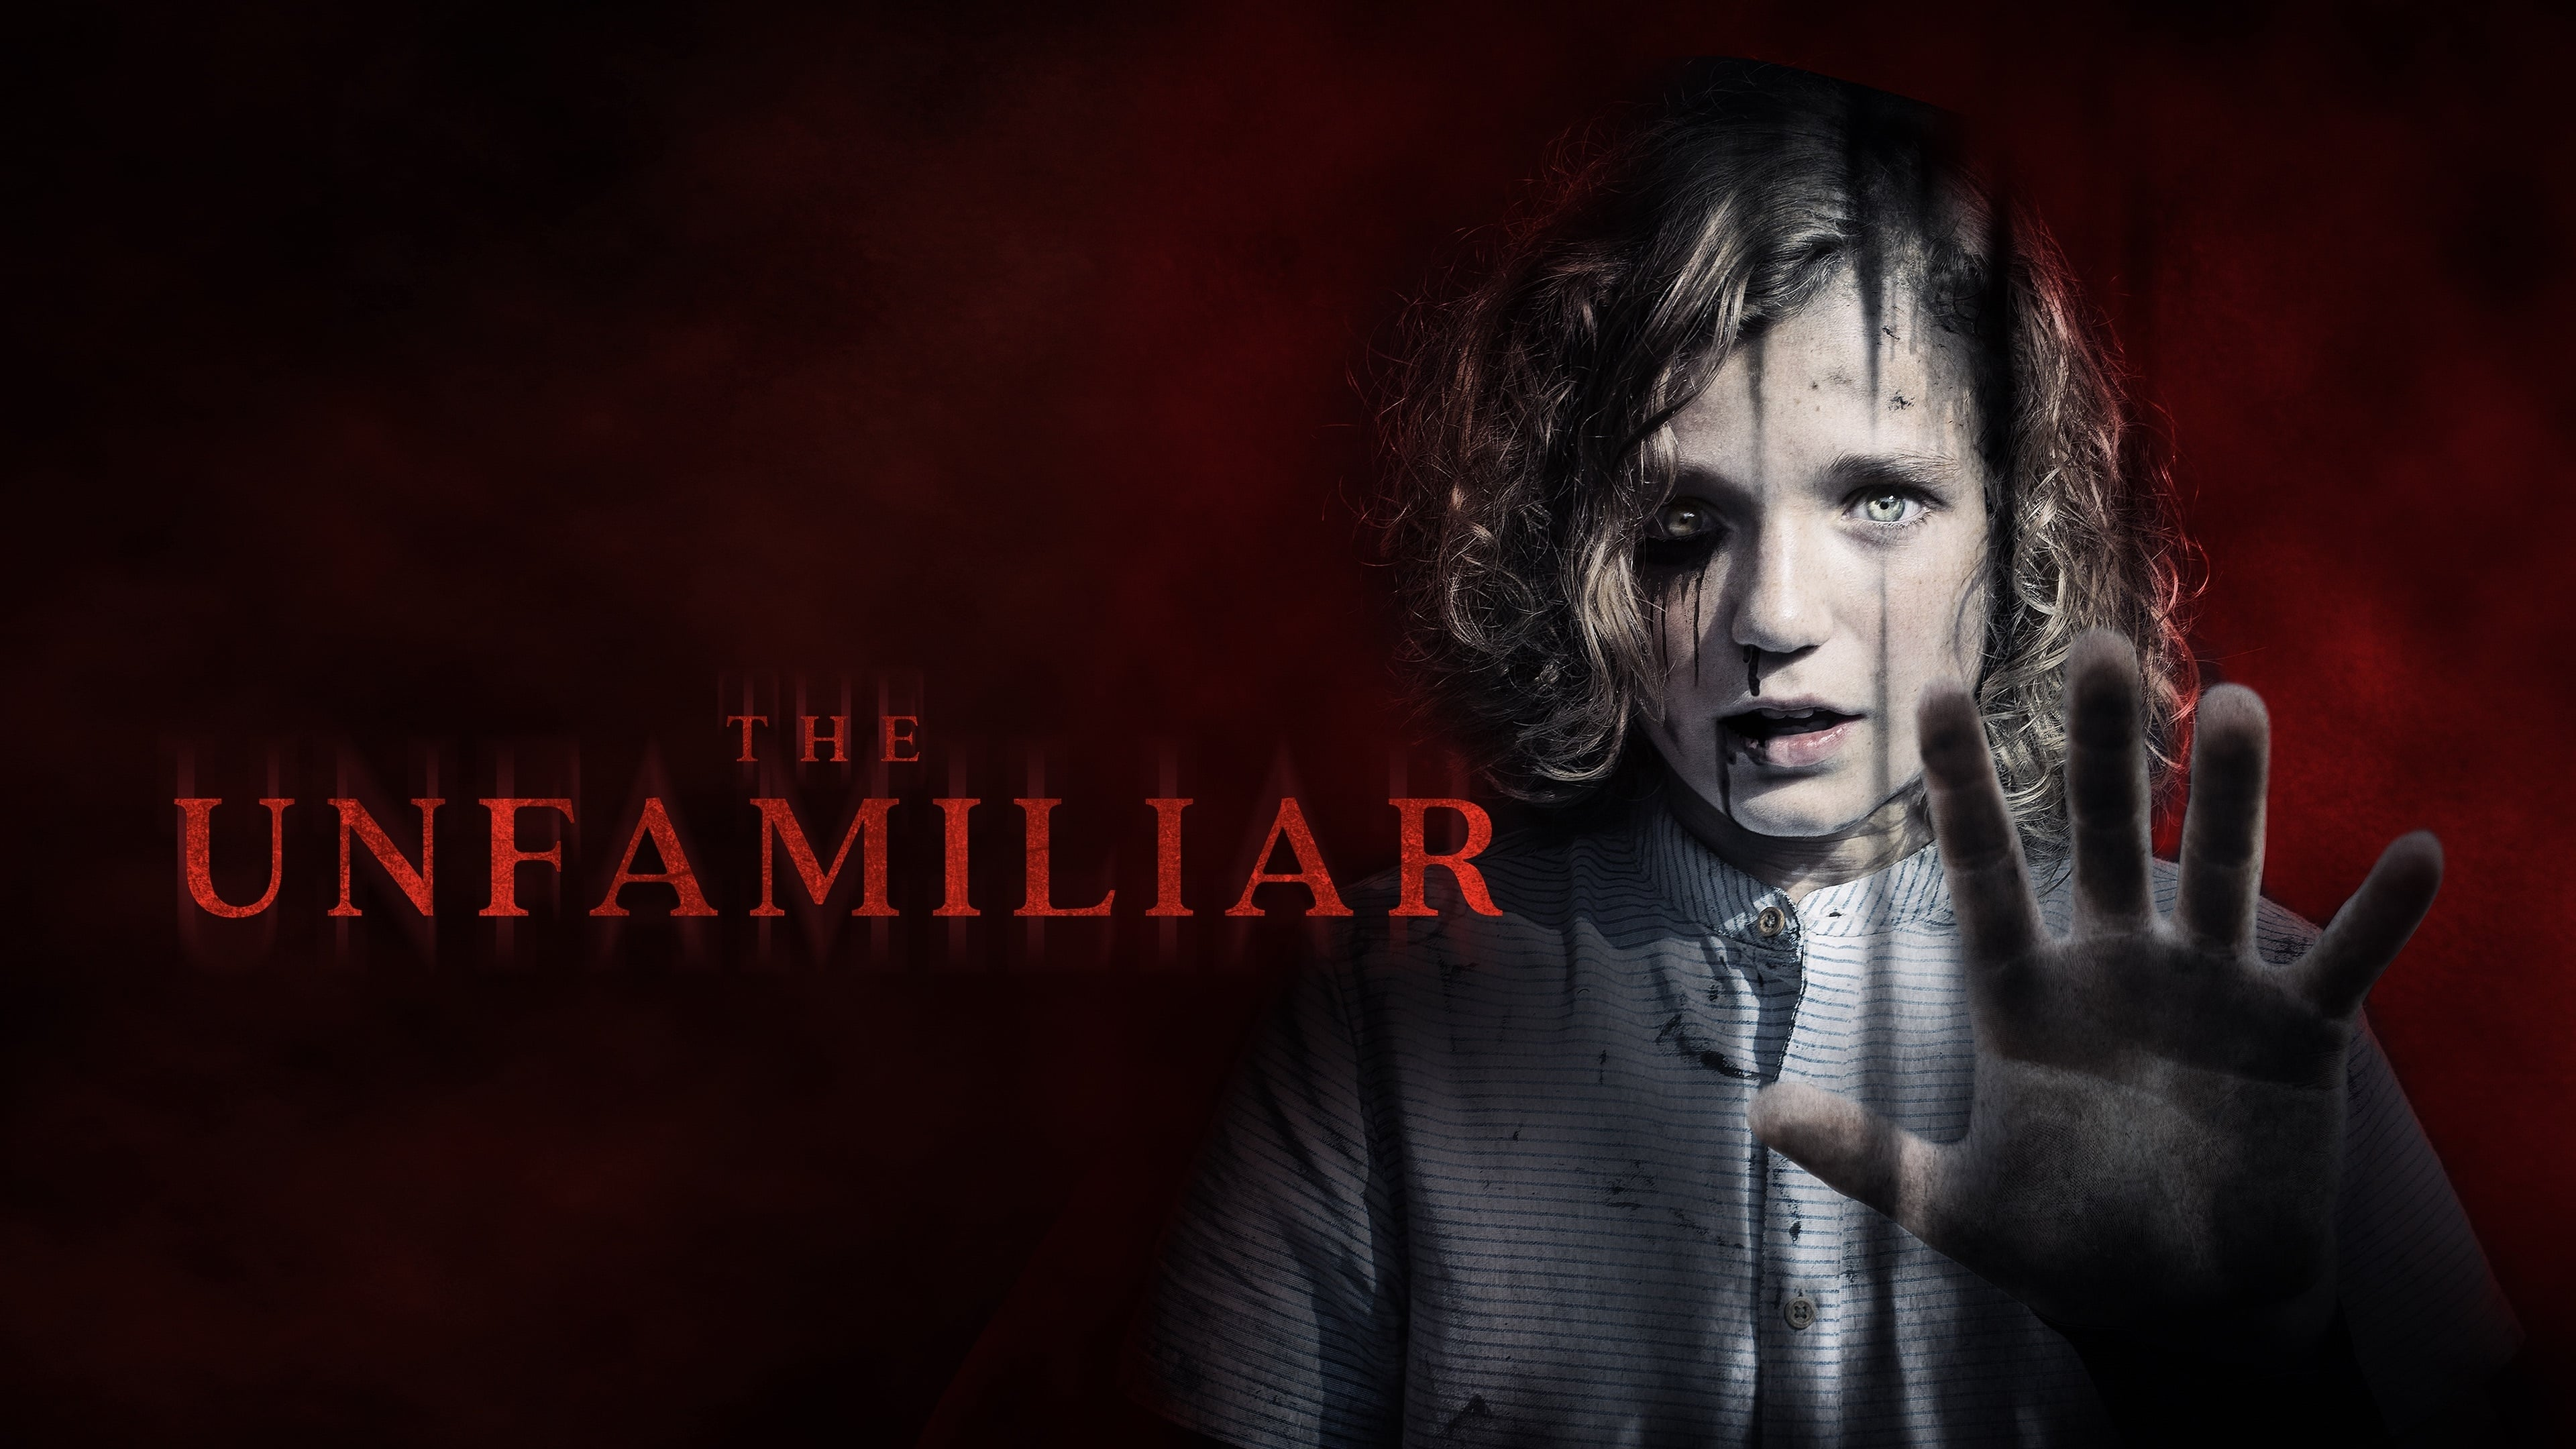 The Unfamiliar (2020) Full Movie